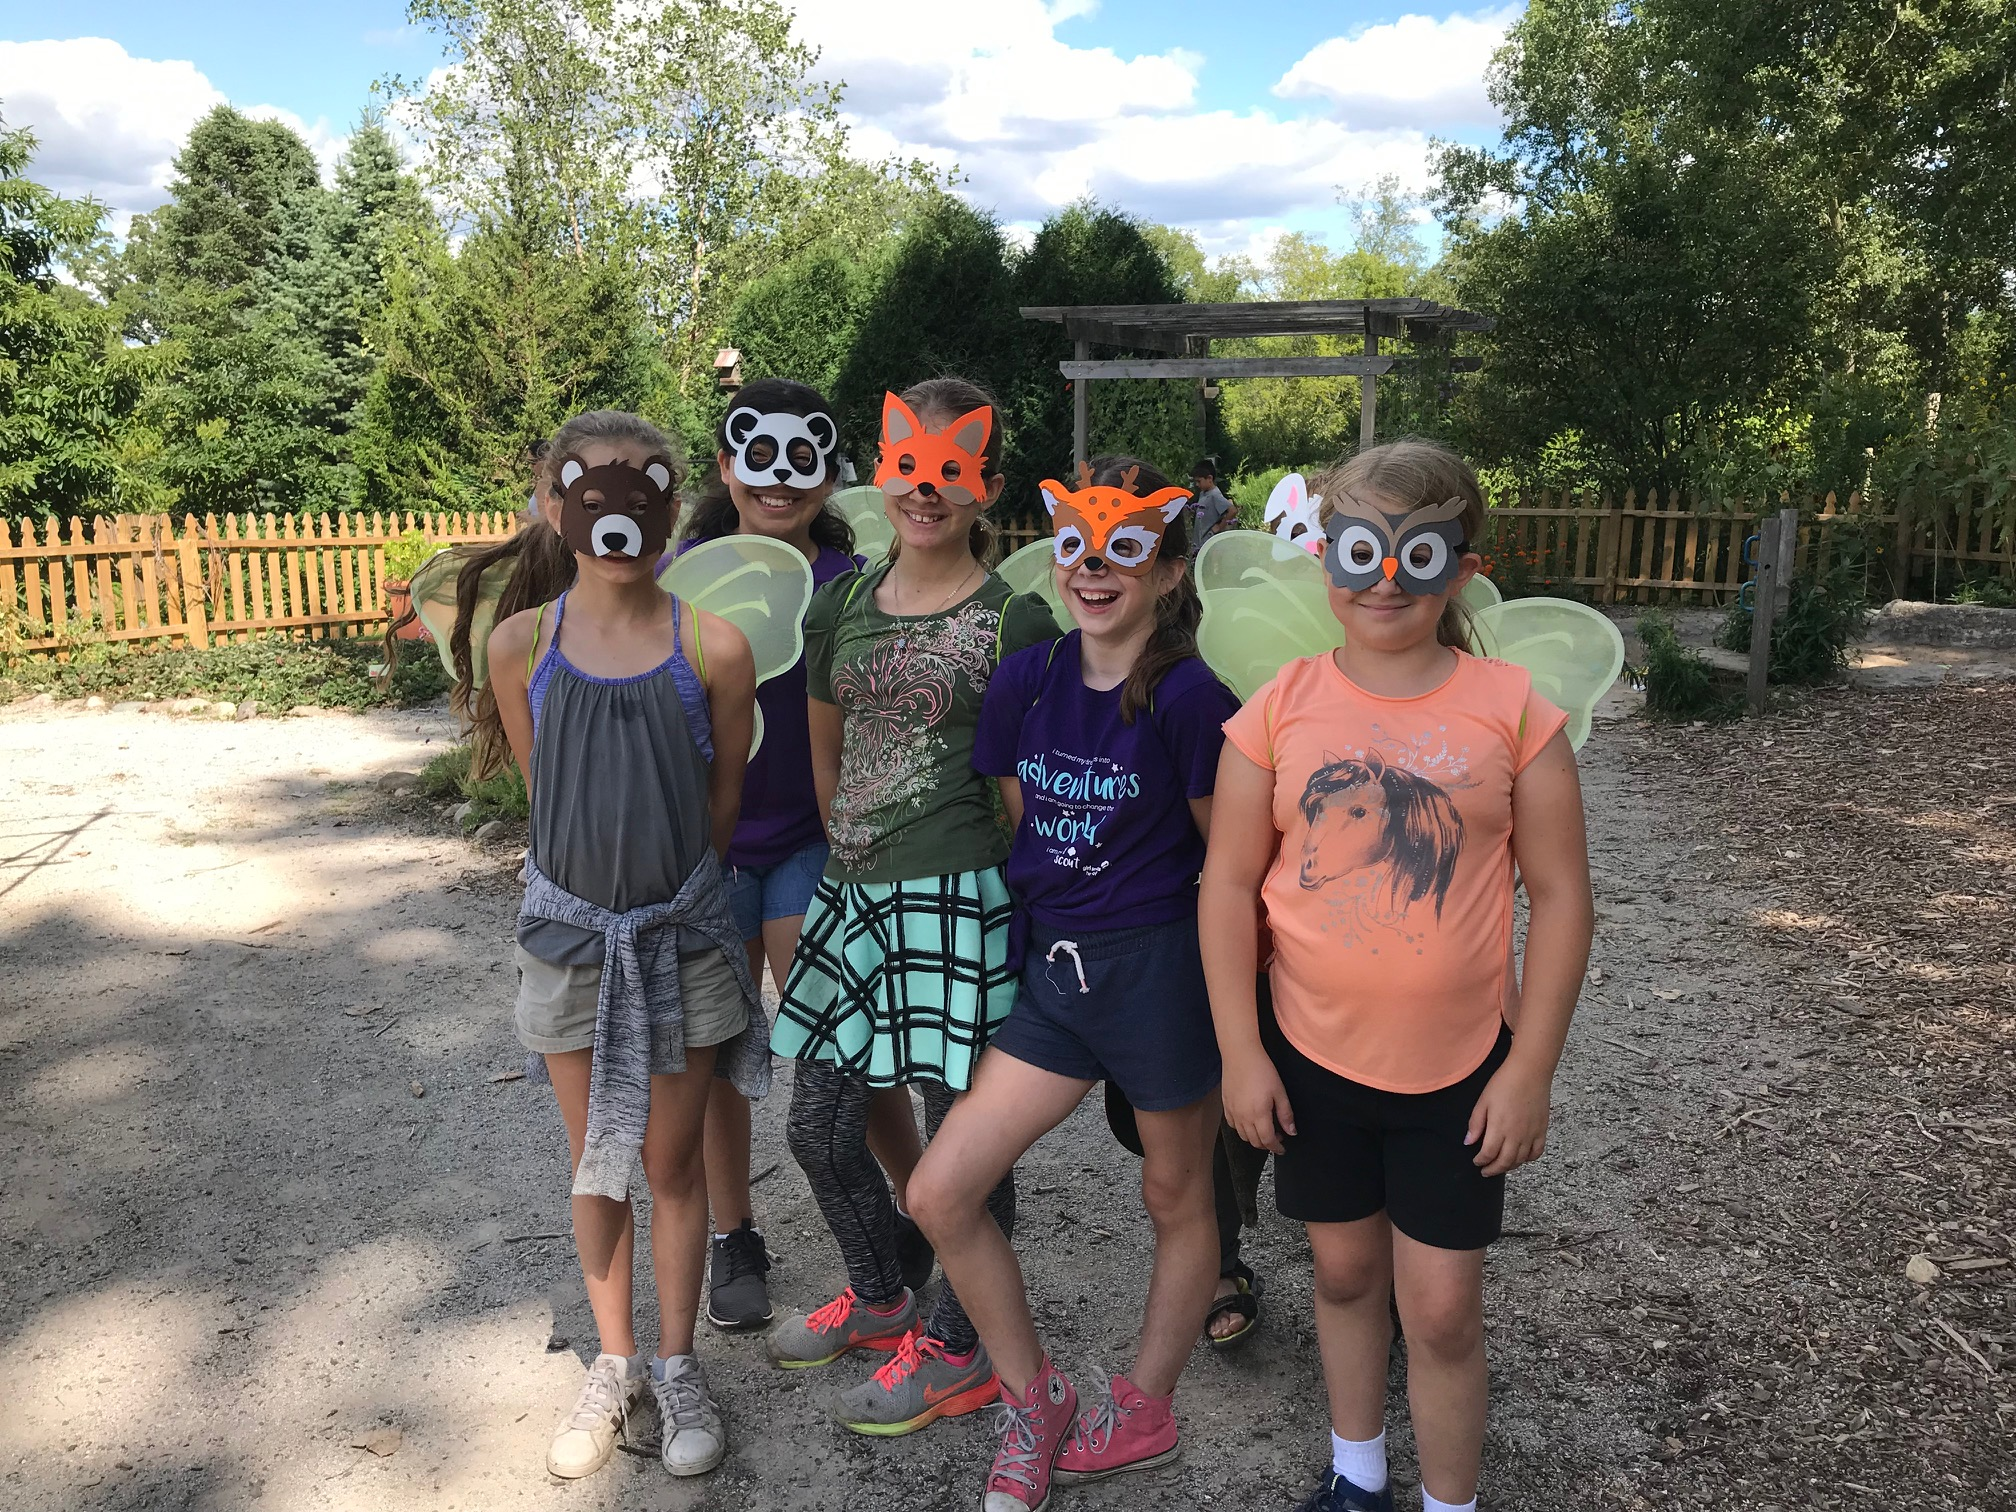 Wines scouts pose with masks